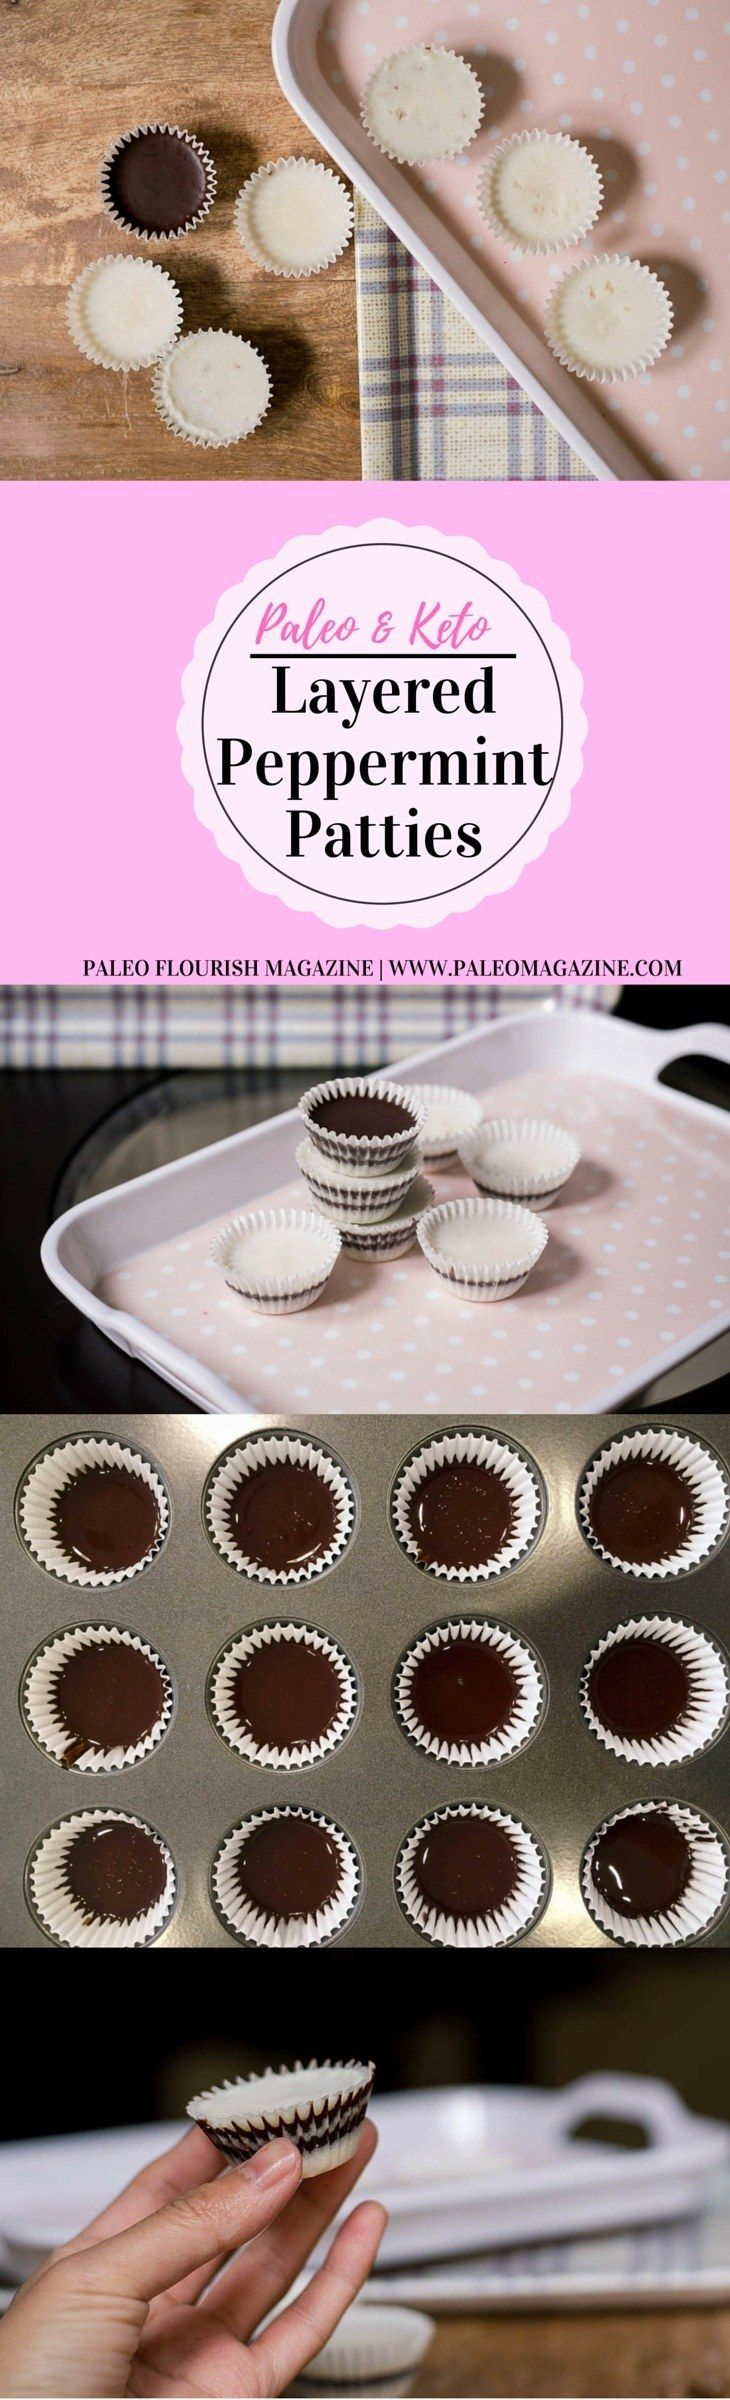 Layered Peppermint Patties Recipe [Paleo, Keto] #paleo #recipes #glutenfree http://paleomagazine.com/paleo-peppermint-patties-recipe